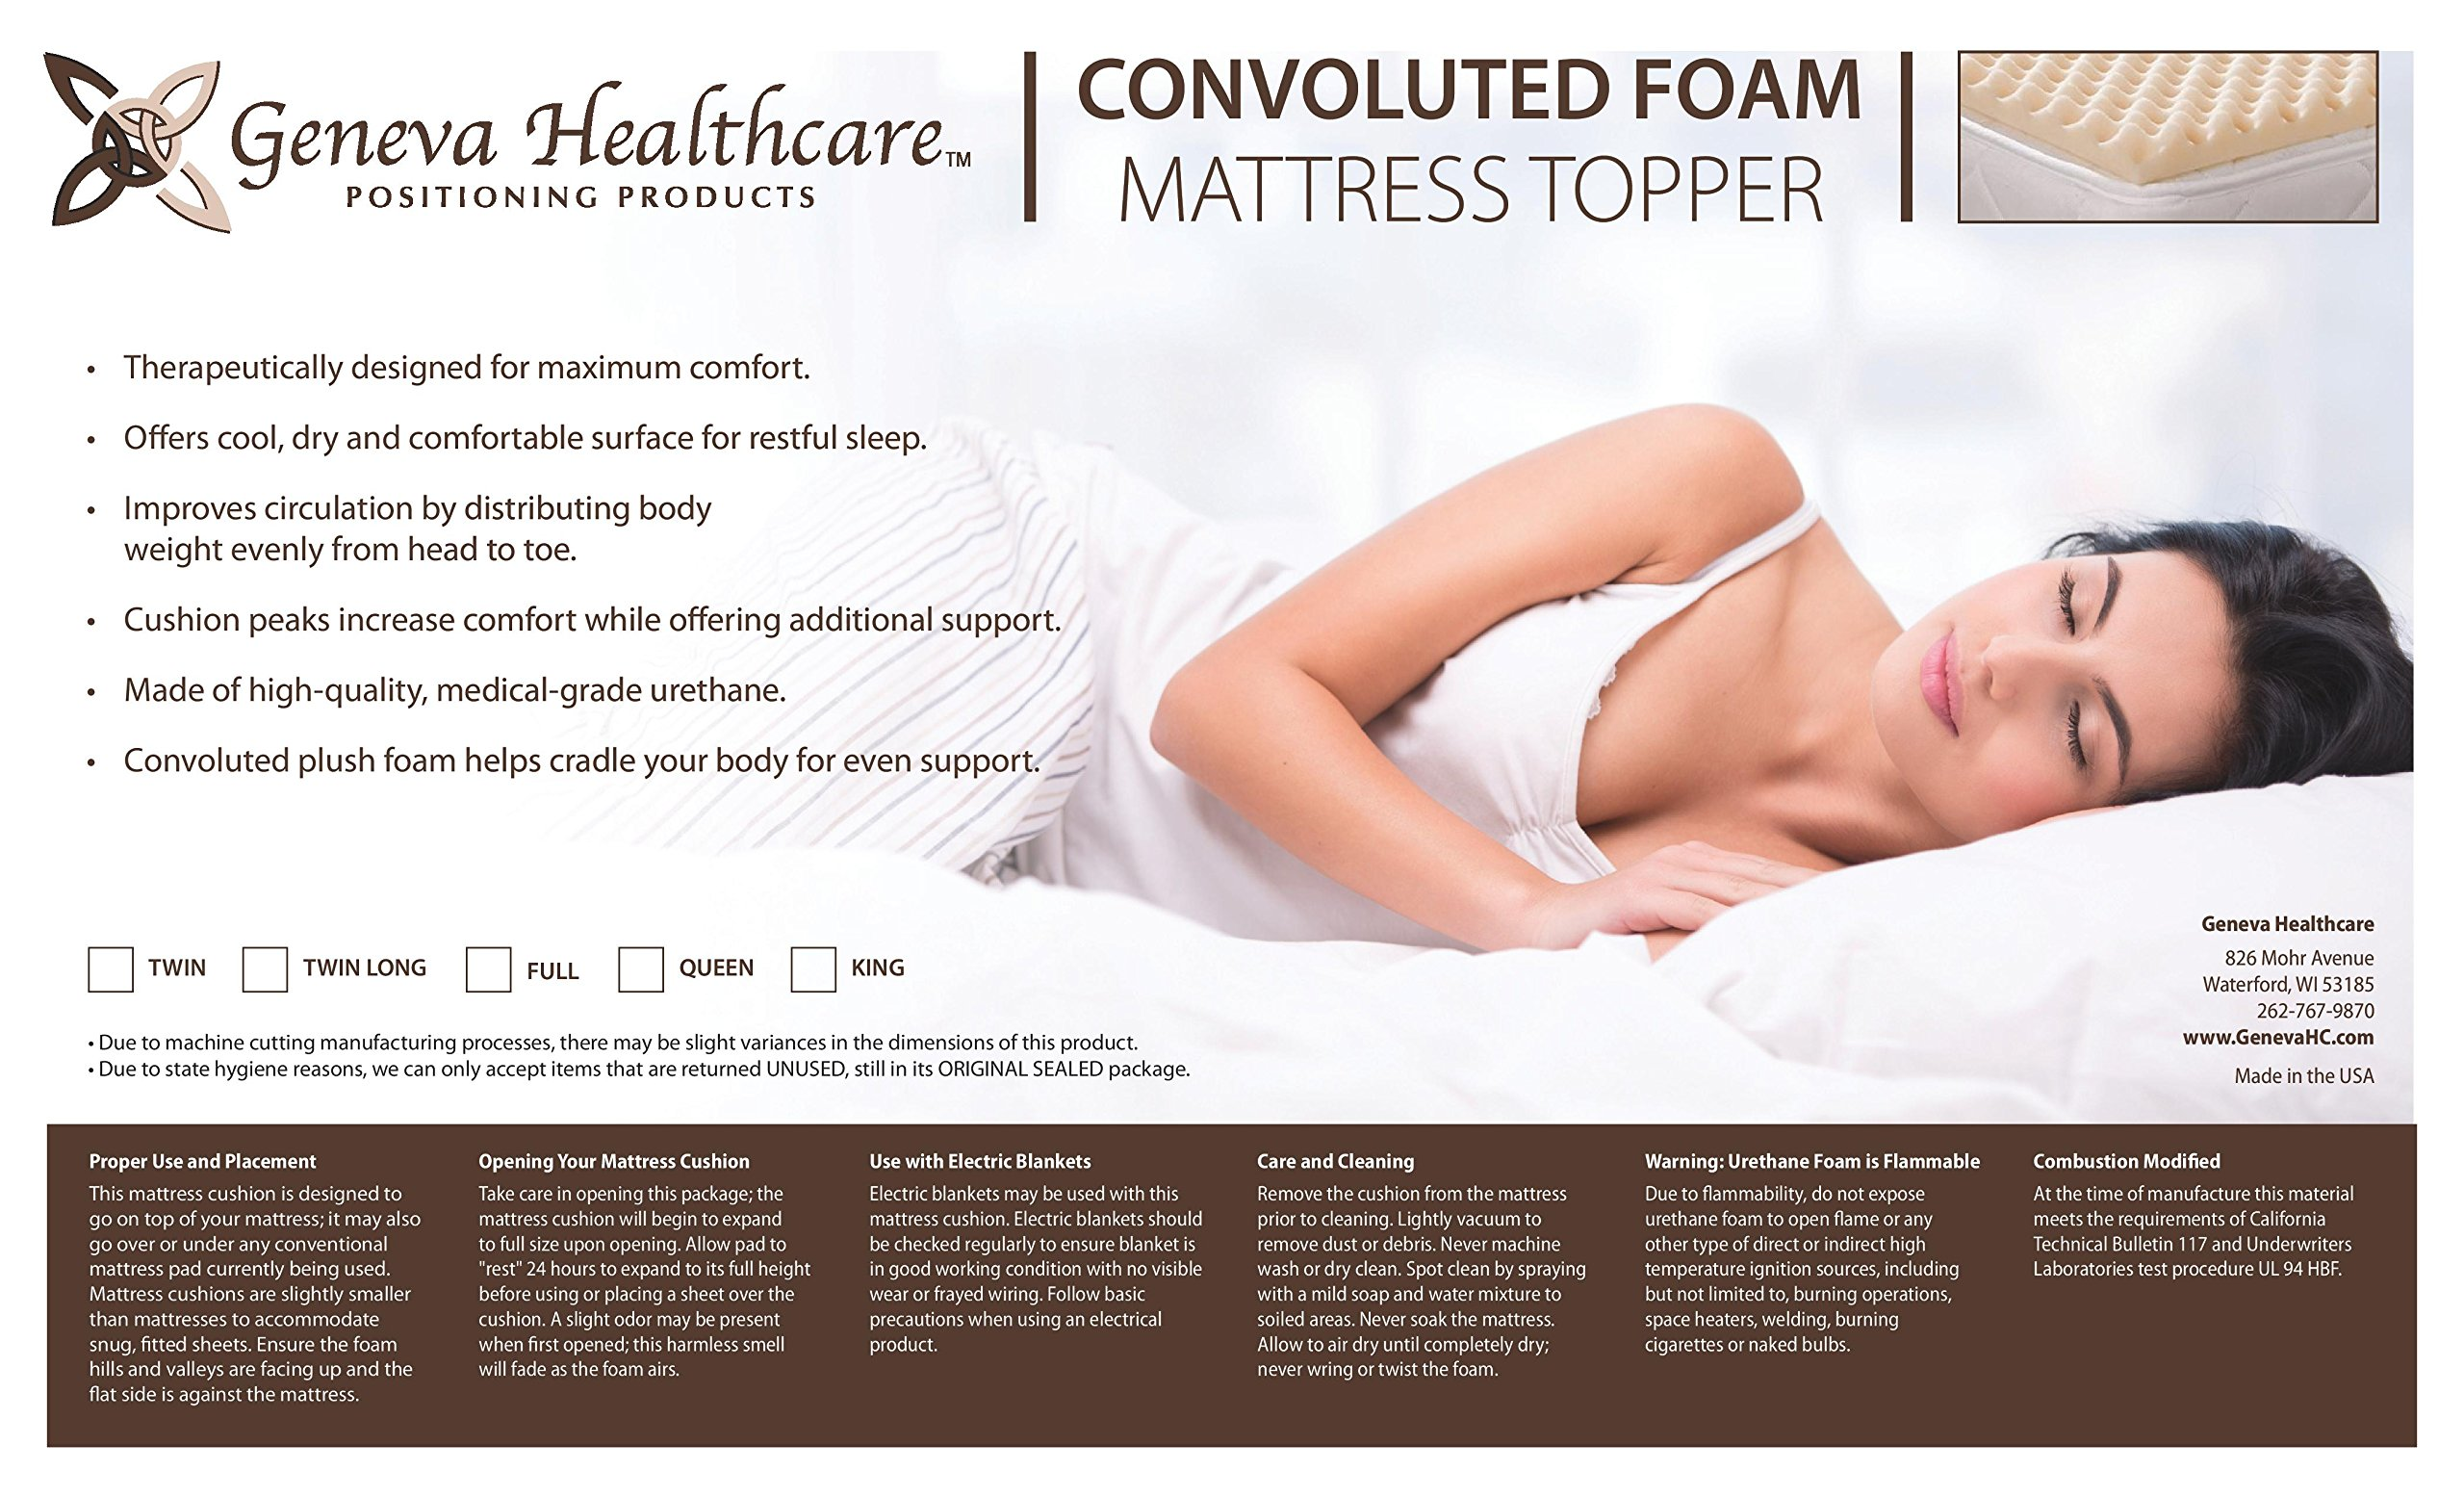 Geneva Healthcare Egg Crate Convoluted Foam Mattress Pad 3'' Topper - 3'' x 56'' x 72'' - 1.5 Density